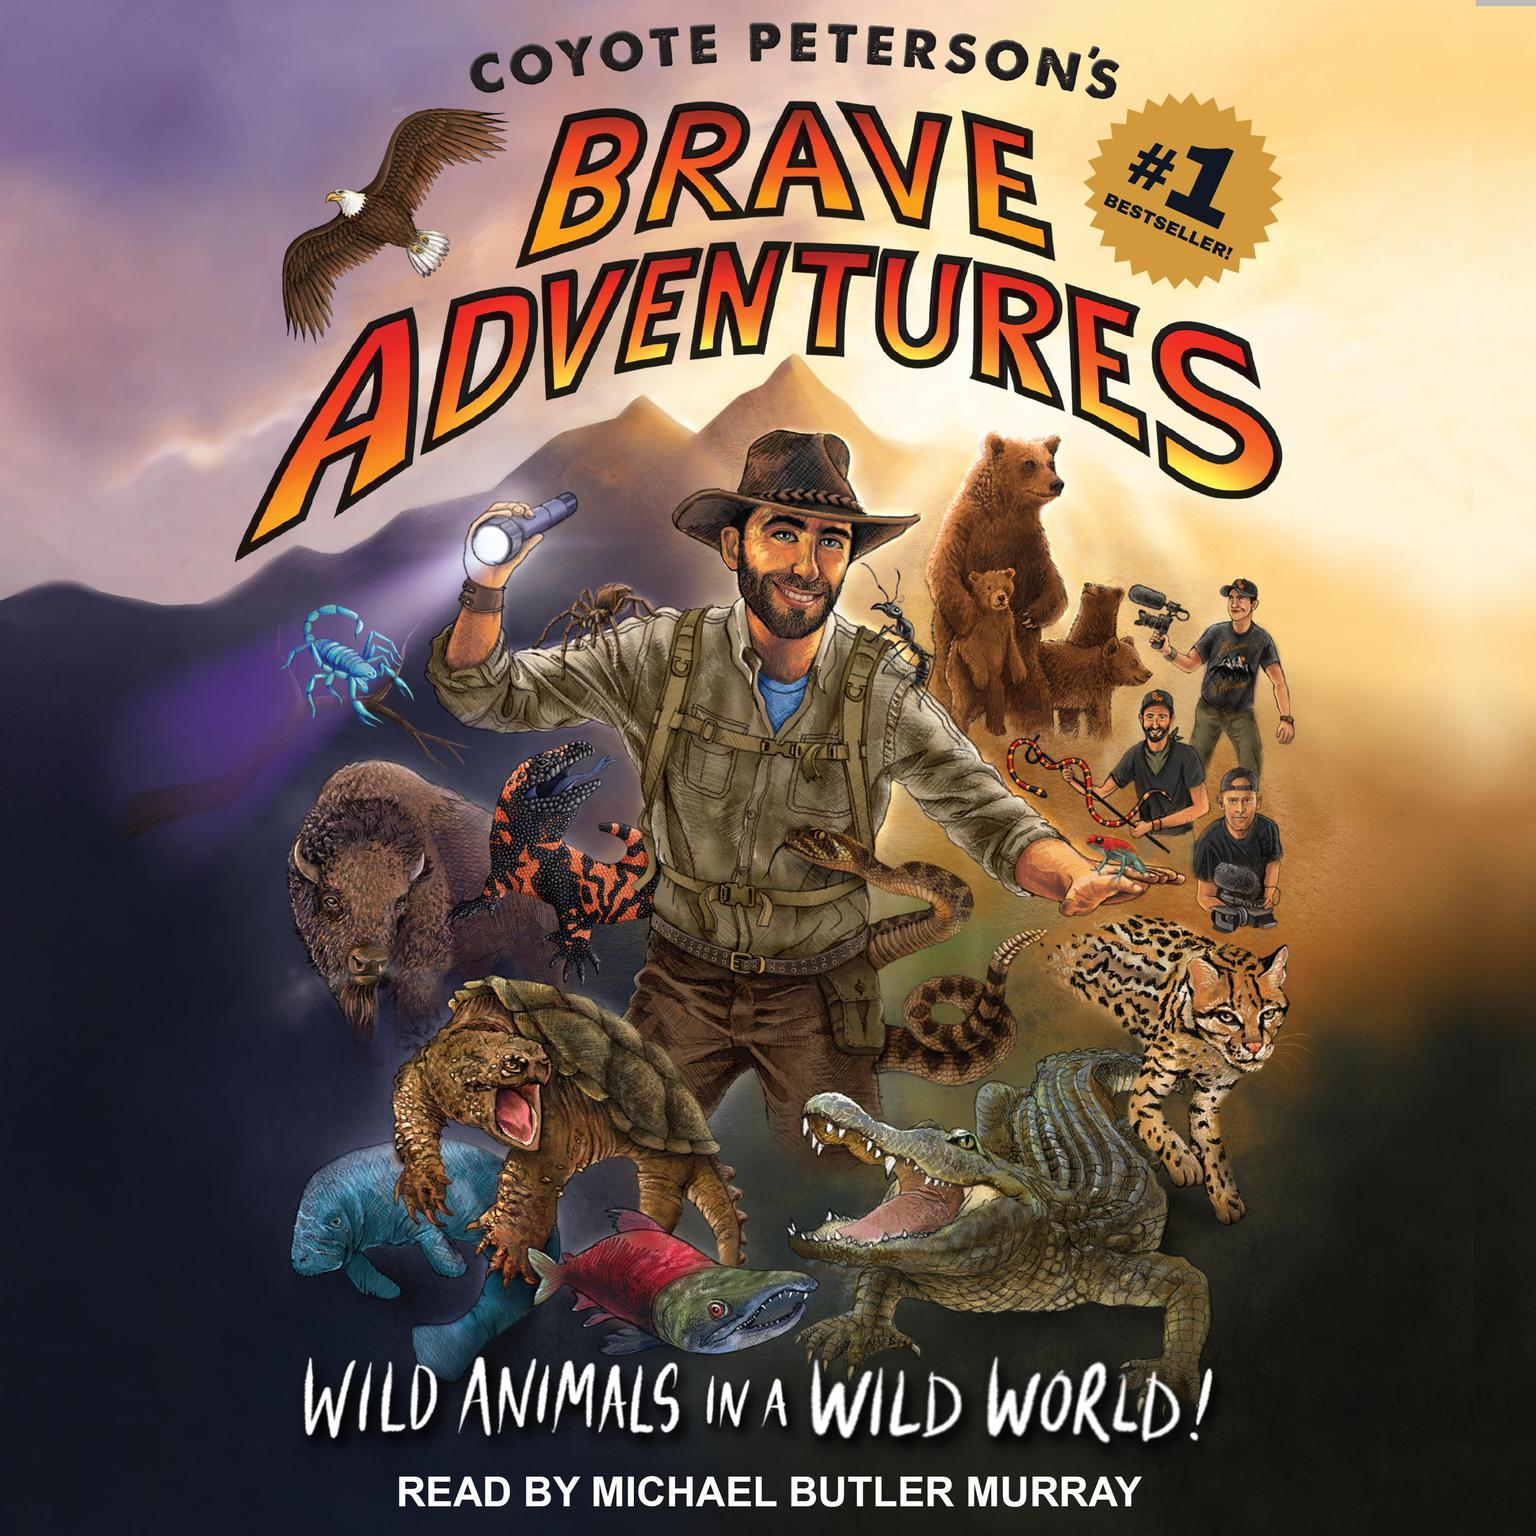 Printable Coyote Peterson's Brave Adventures: Wild Animals in a Wild World Audiobook Cover Art